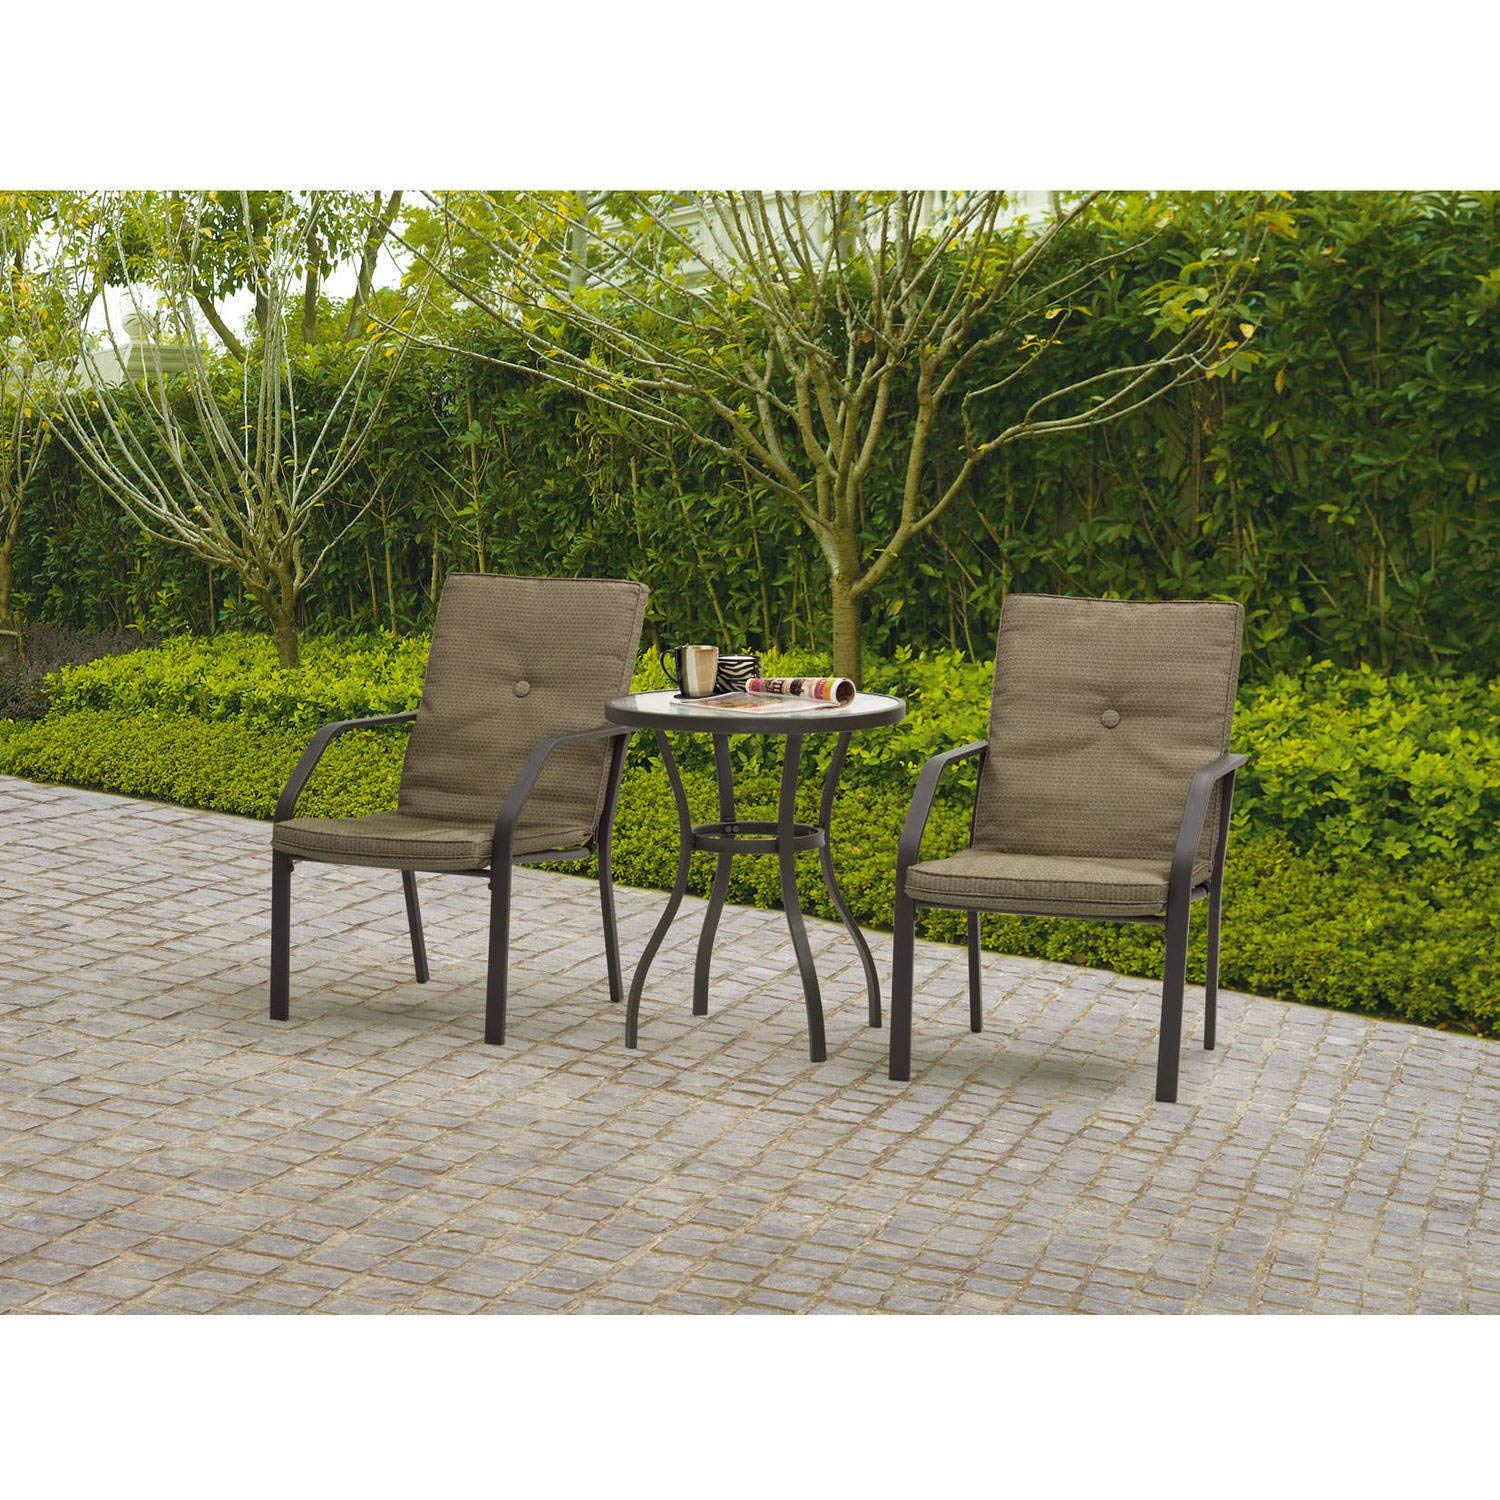 Comfortable Three Piece Patio Bistro Set, Durable, Powder Coated Steel Frames, 100 Percent Outdoor Printed Fabric, Tempered Glass Table Top, Removable Cushion, Deep Tan Finish + Expert Guide